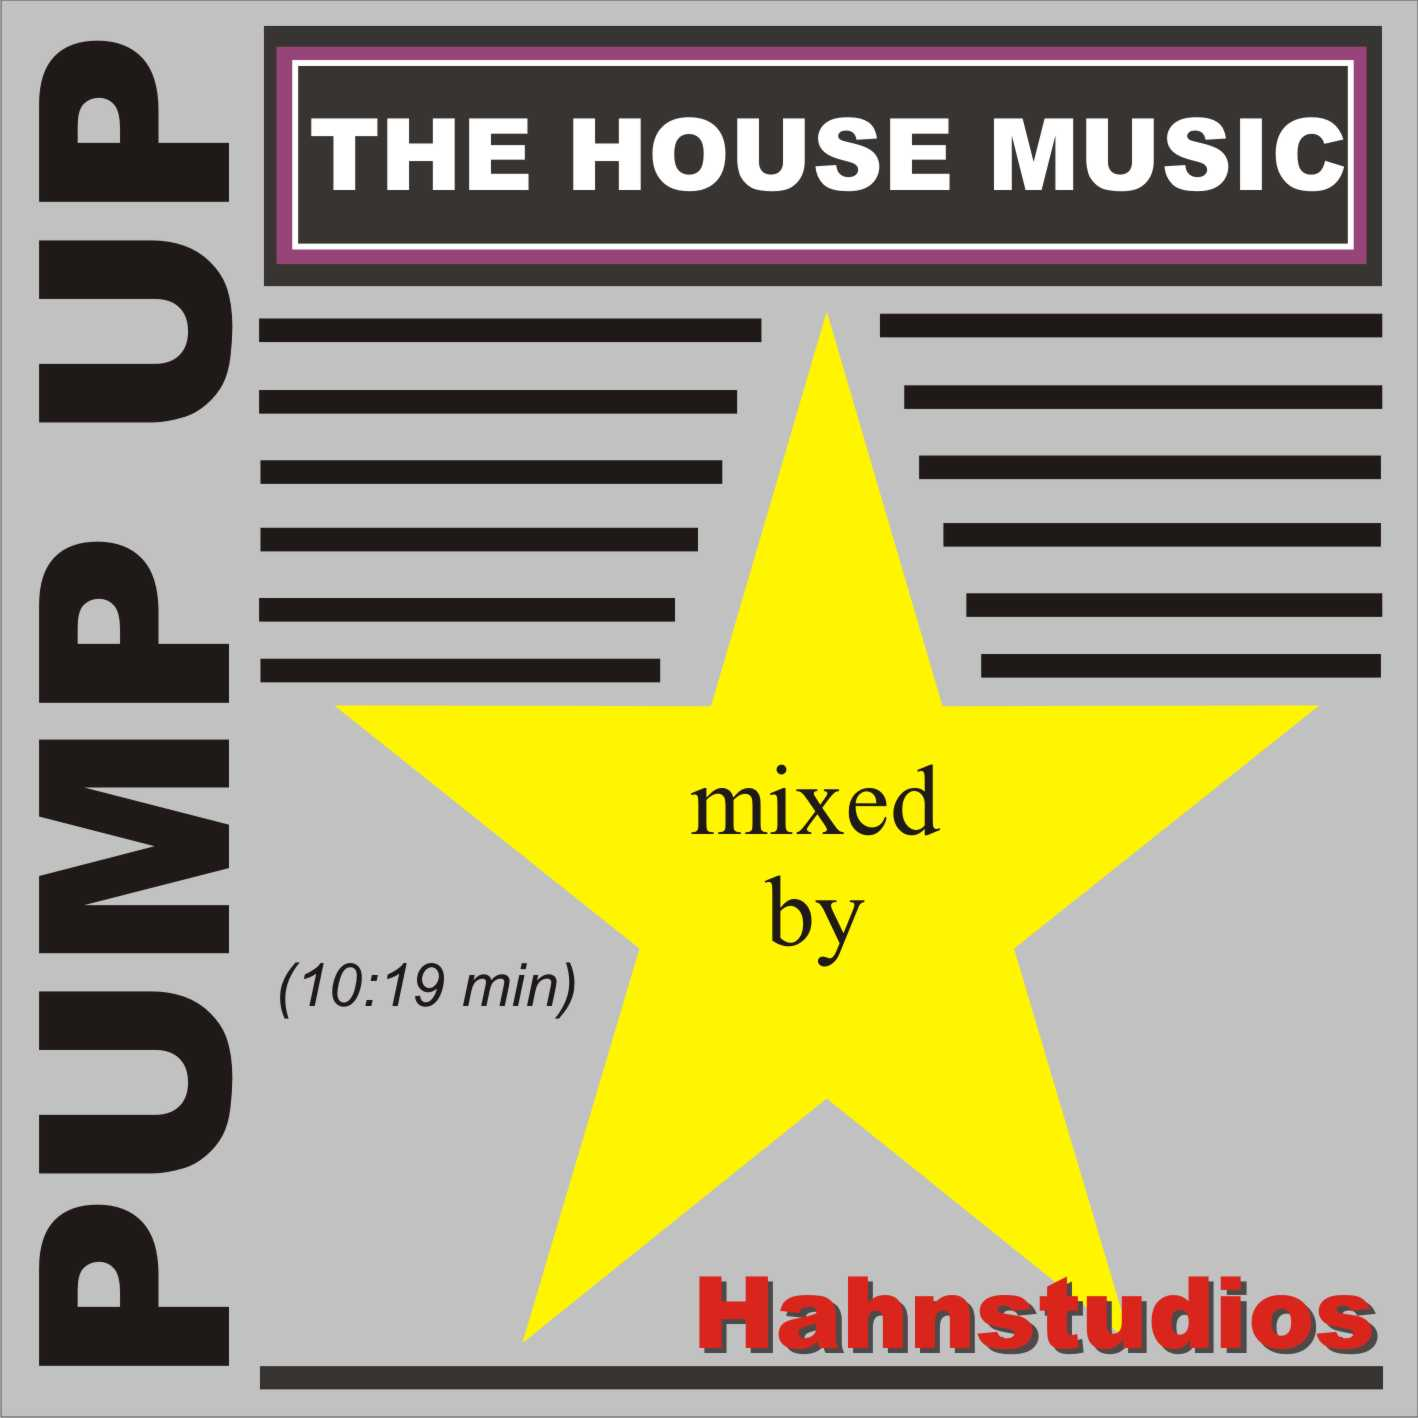 [Pump+up+cover+www.jpg]